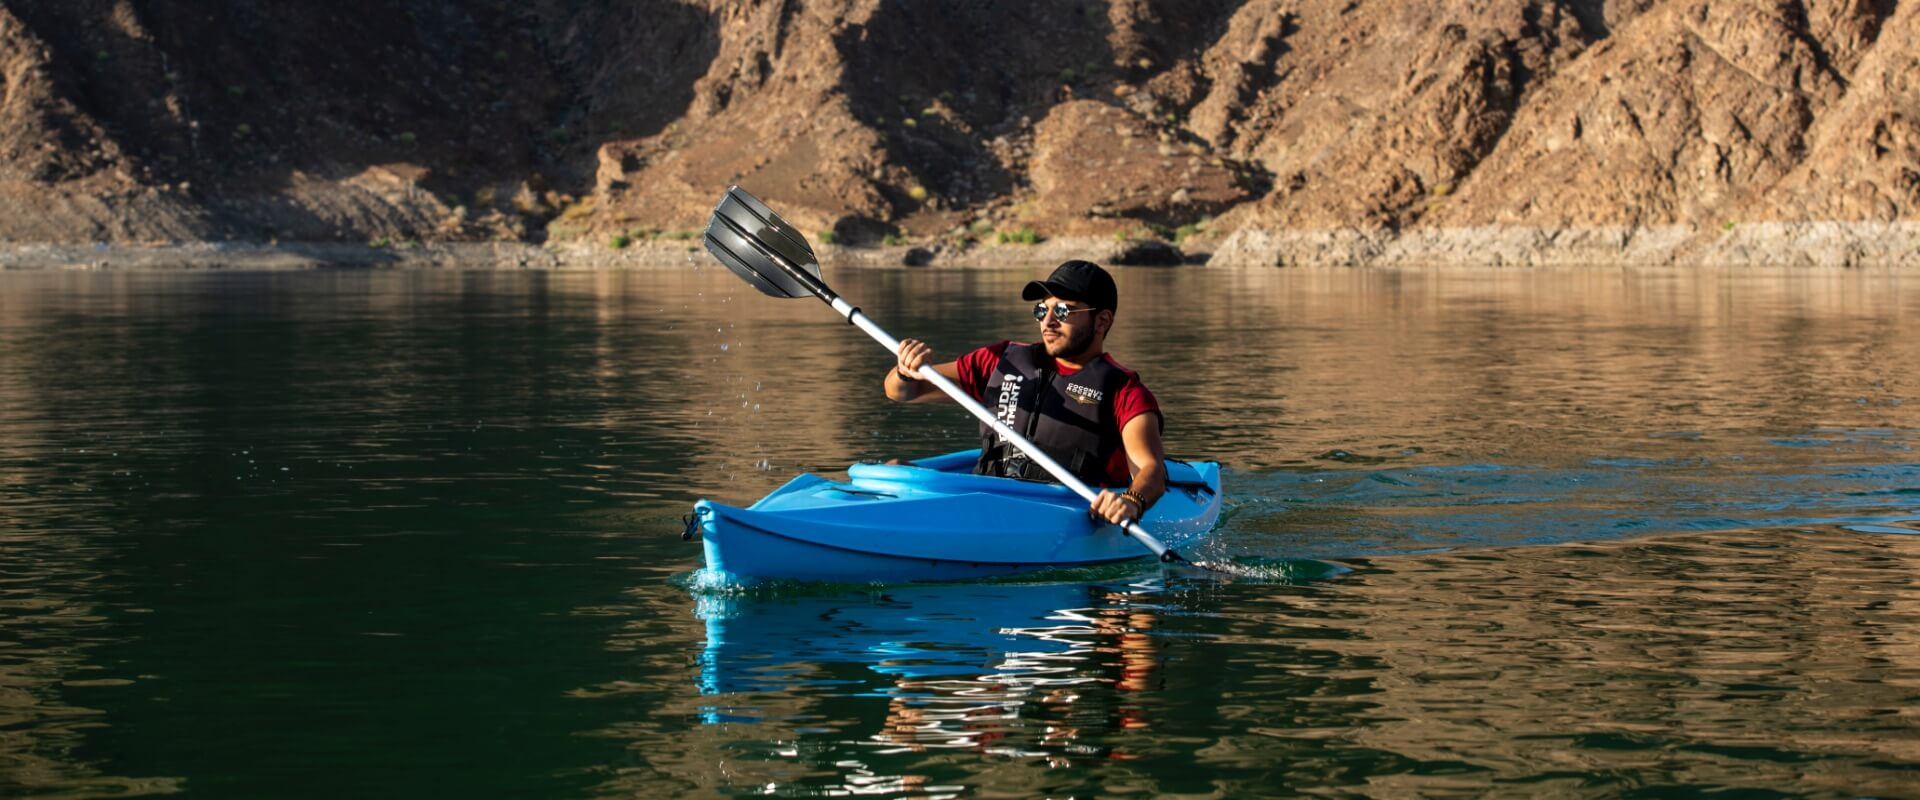 Visit-Hatta-kayaking-play-relax